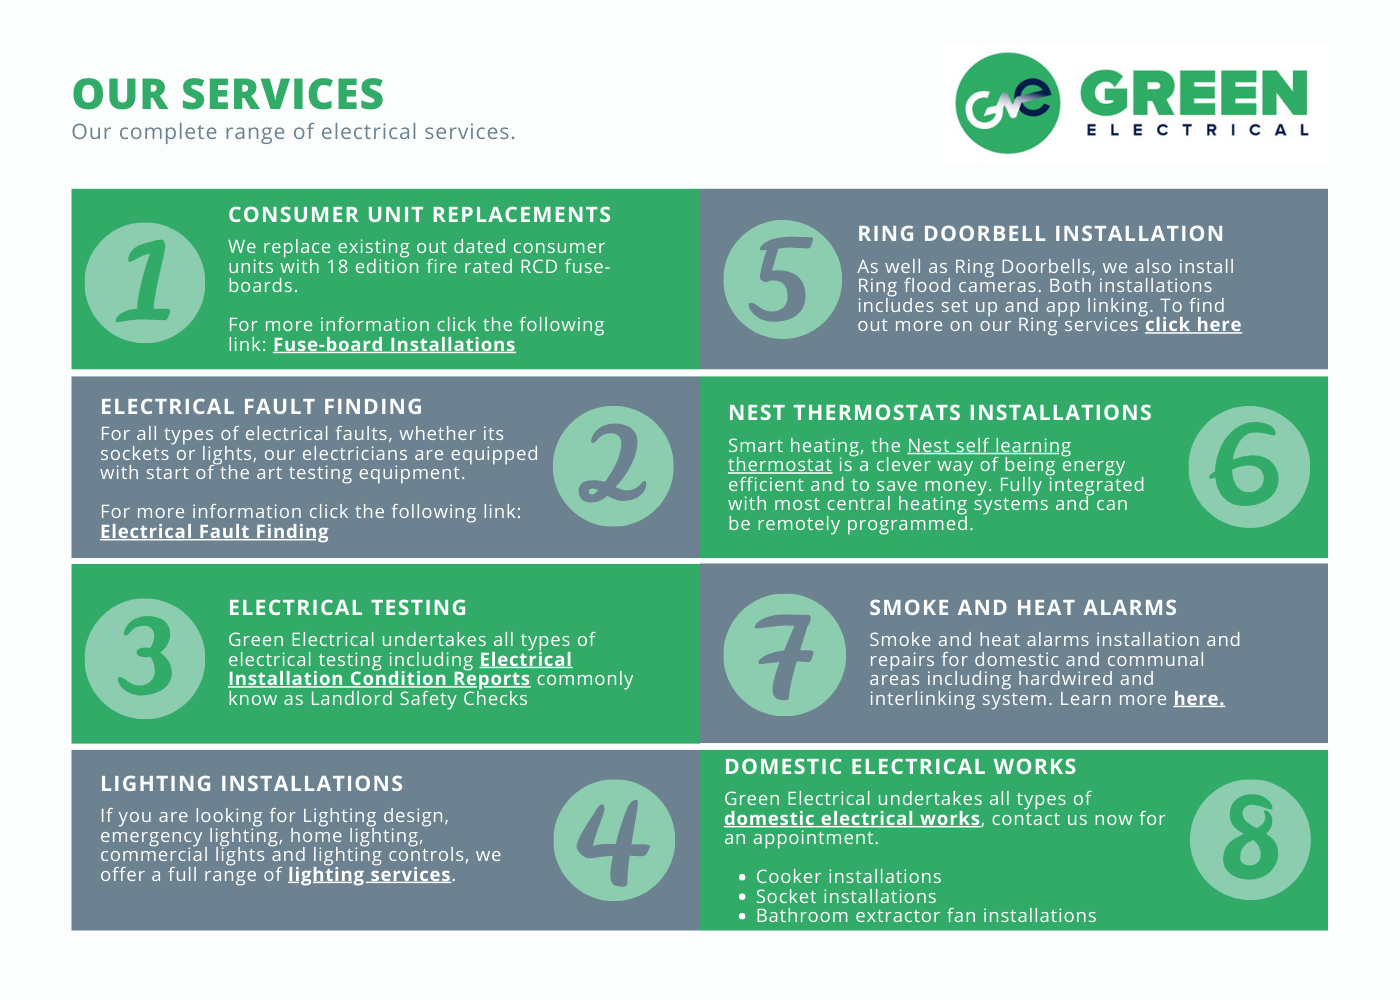 Green Electrical - Our electrical services